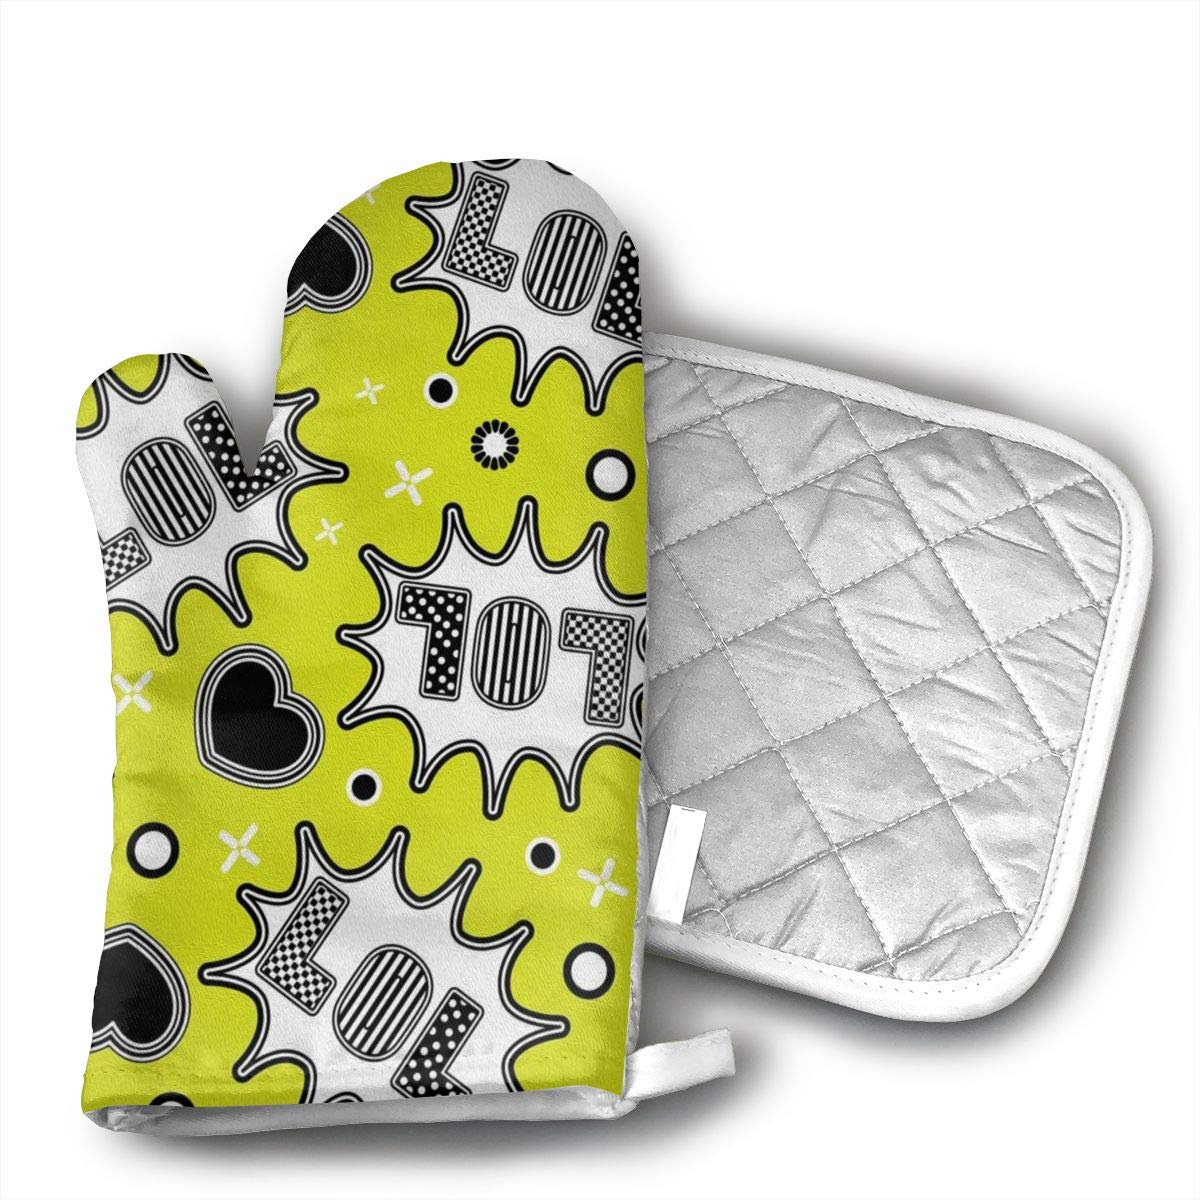 MEILVWEN LOL Oven Mitt and Pot Holder Set,Heat Resistant for Cooking and Baking Kitchen Gift